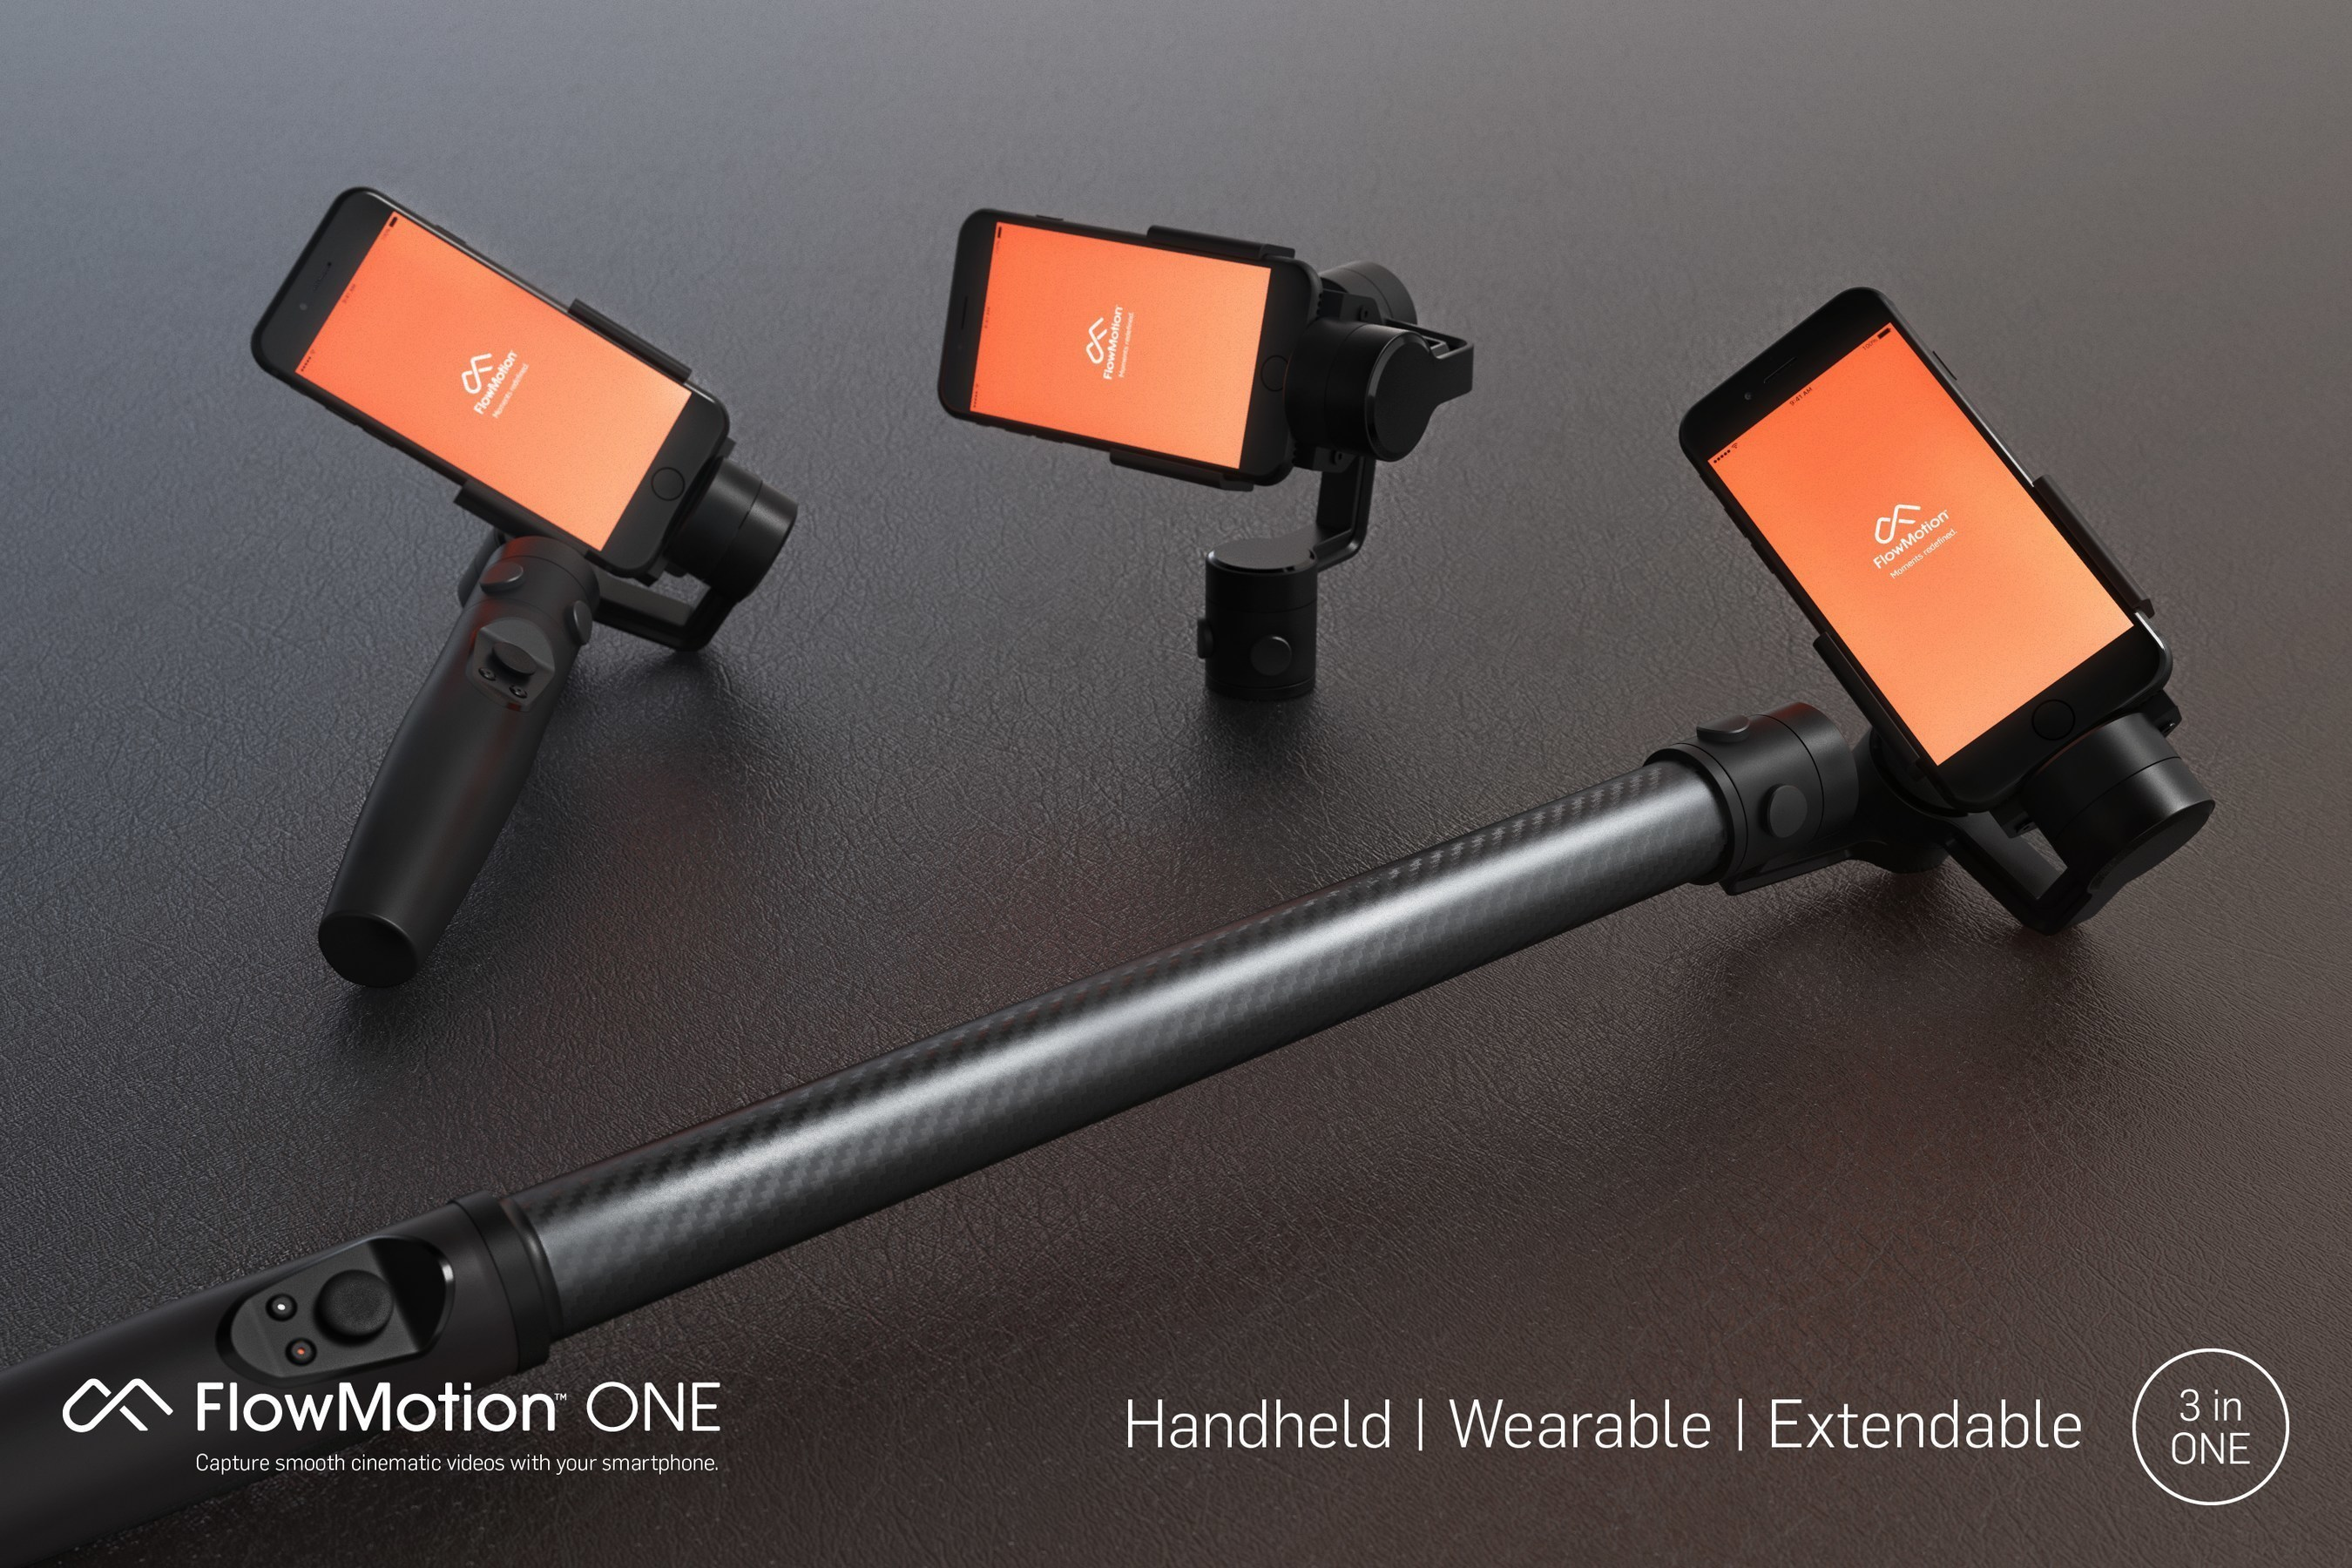 FlowMotion Launches First Wearable and Handheld Smartphone Stabilizer